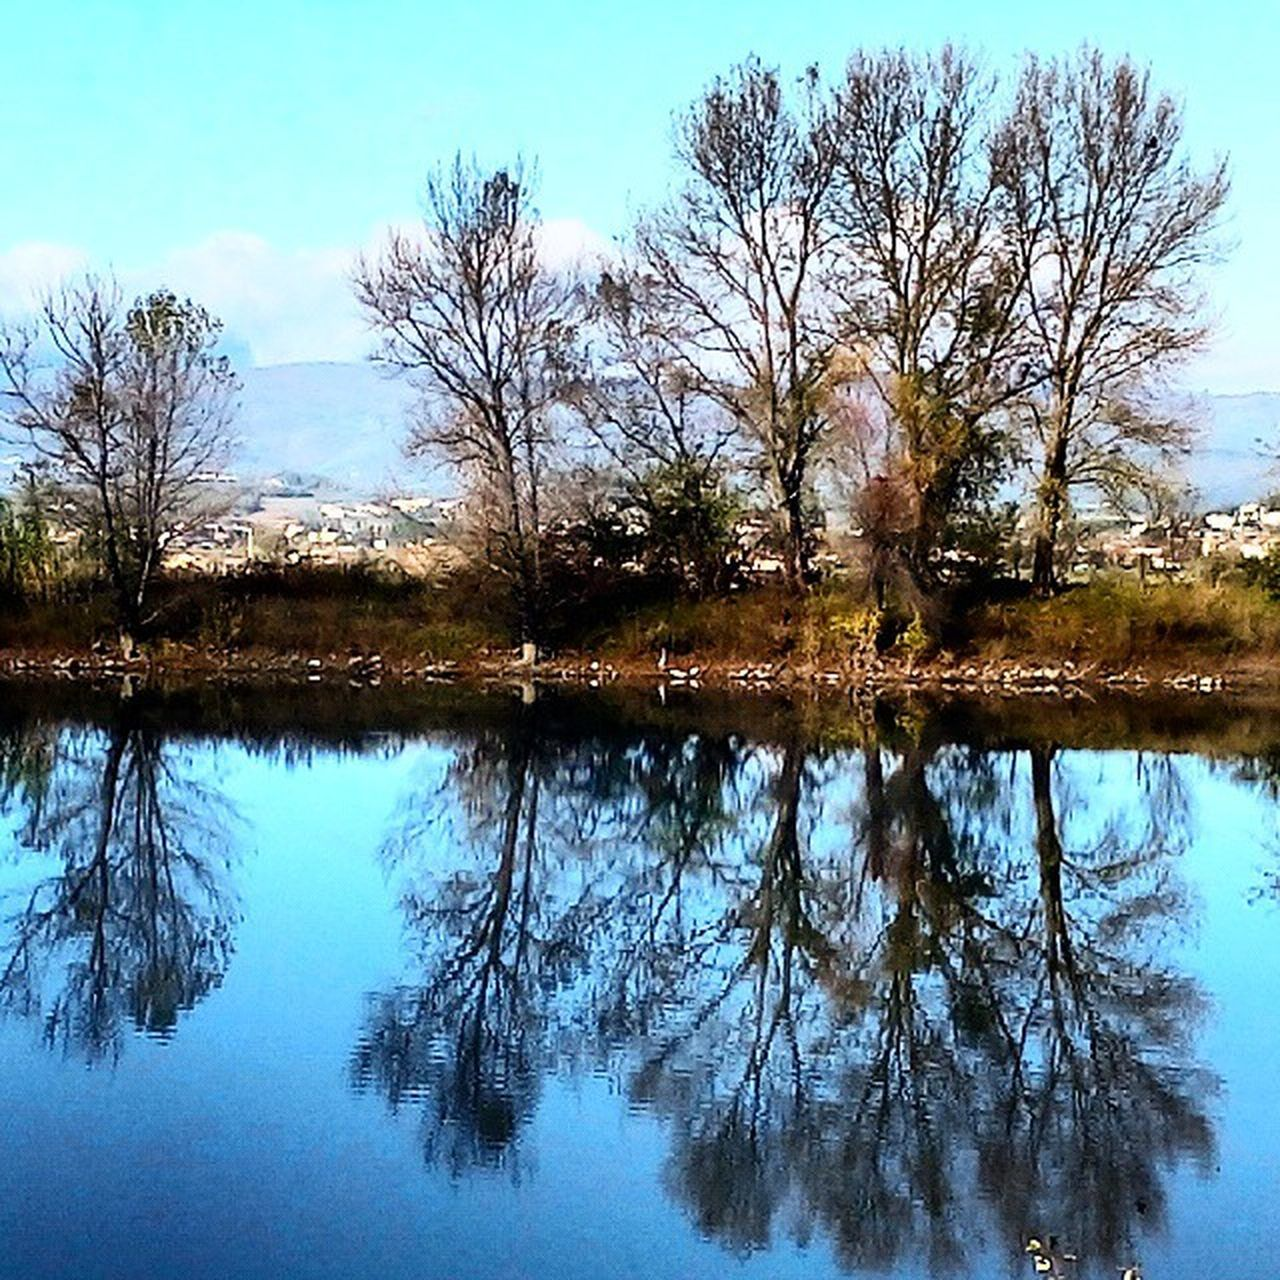 reflection, tree, tranquility, tranquil scene, lake, nature, water, beauty in nature, outdoors, scenics, no people, bare tree, sky, day